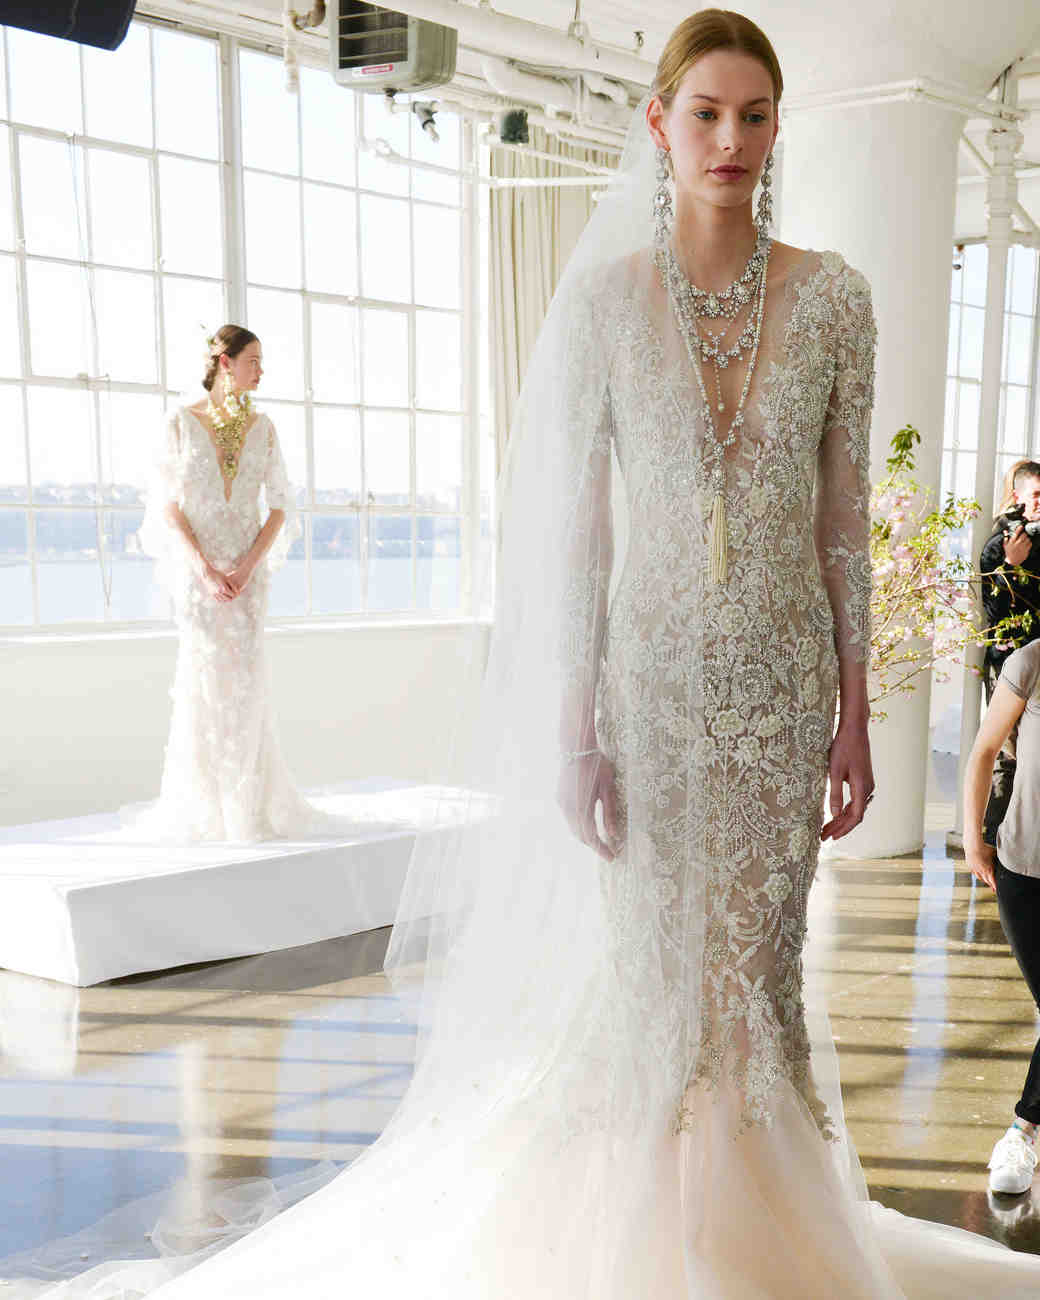 marchesa wedding dresses spring marchesa wedding dresses Marchesa Spring Wedding Dress Collection Martha Stewart Weddings